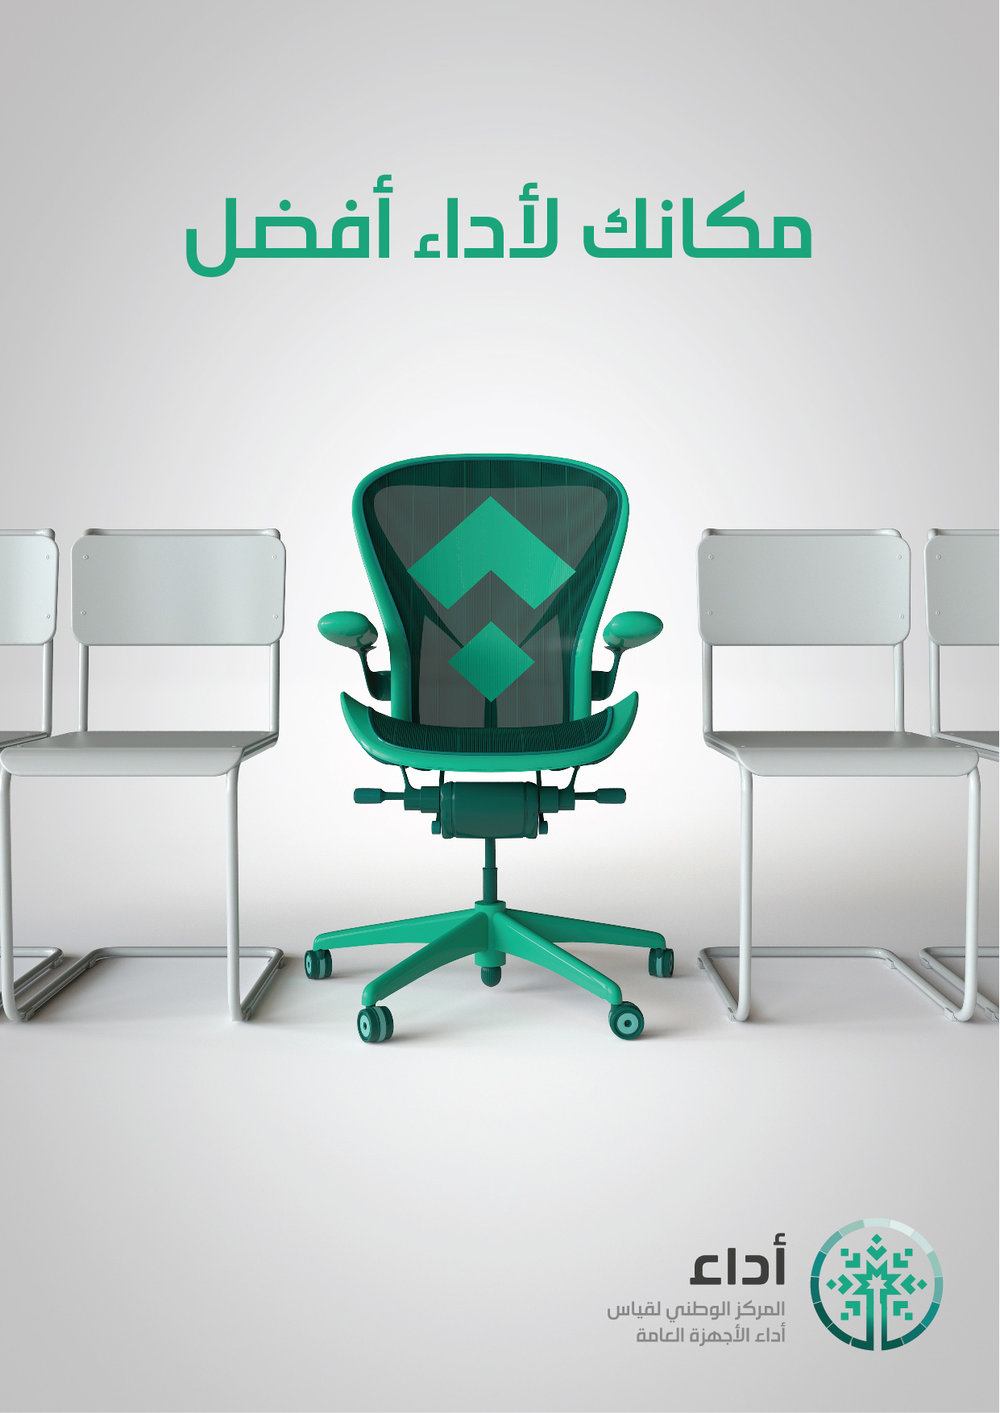 ADAA_HR_YOUR-PLACE_2-Chair.jpg